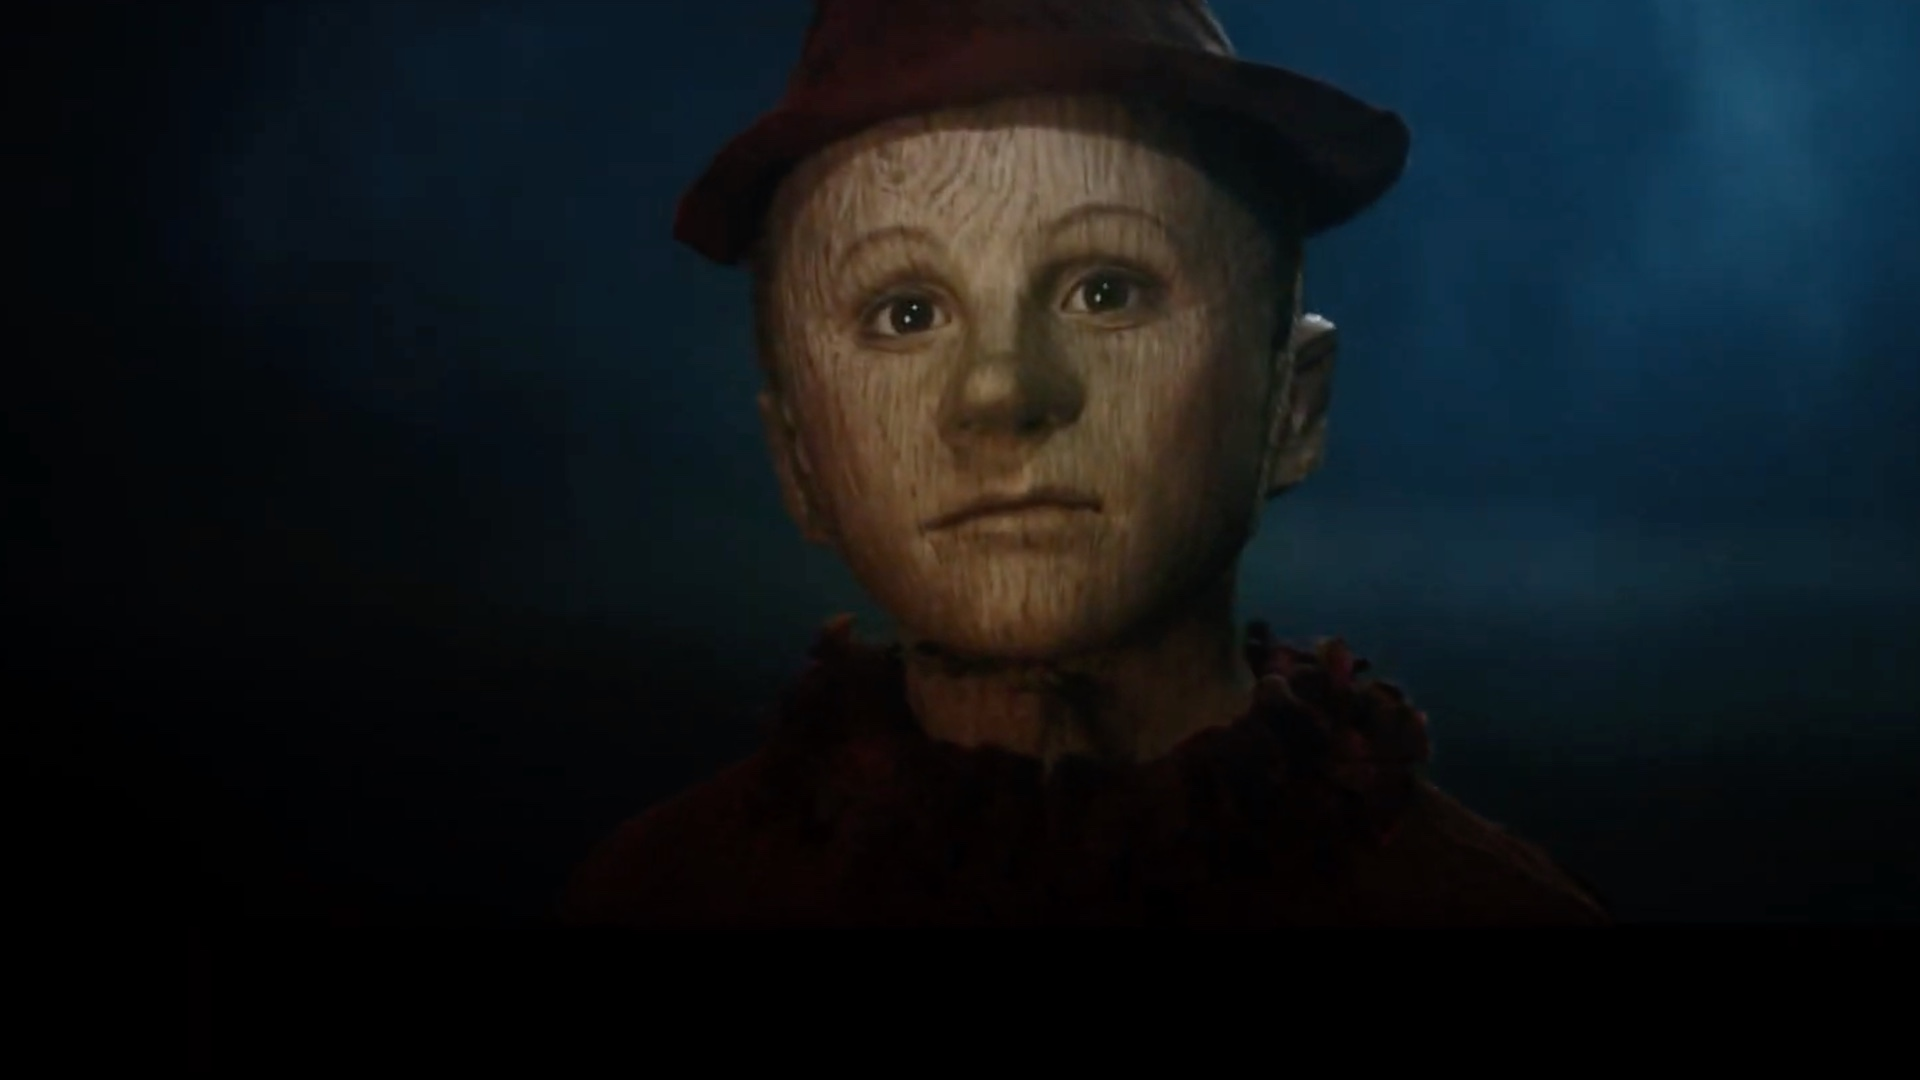 trailer-for-an-interestingly-different-and-dark-version-of-pinocchio-from-italian-director-matteo-garrone-social.jpg